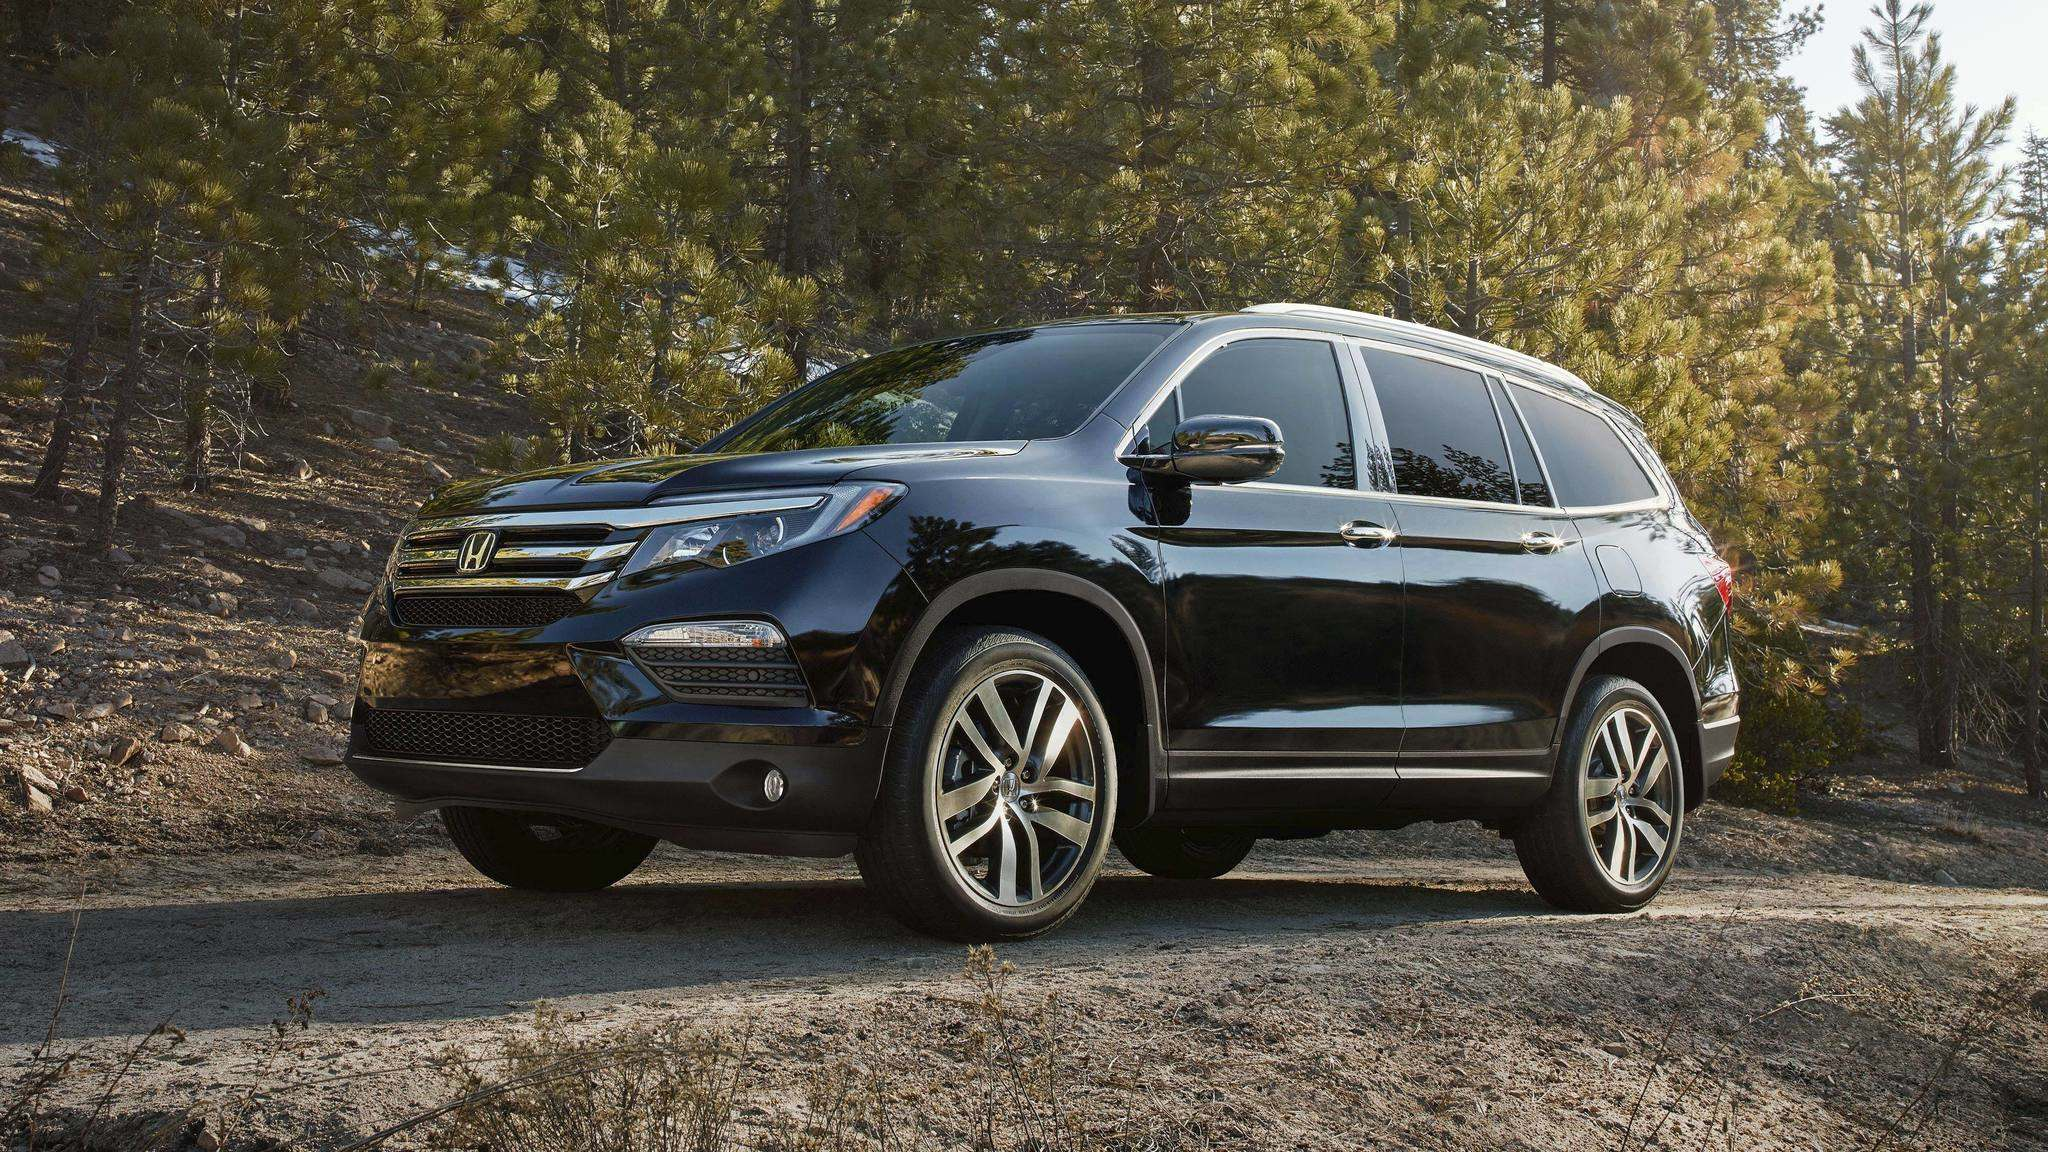 HONDA CANADAThe Honda Pilot is as close as anything to being able to replace the comfort and functionality of the minivan.